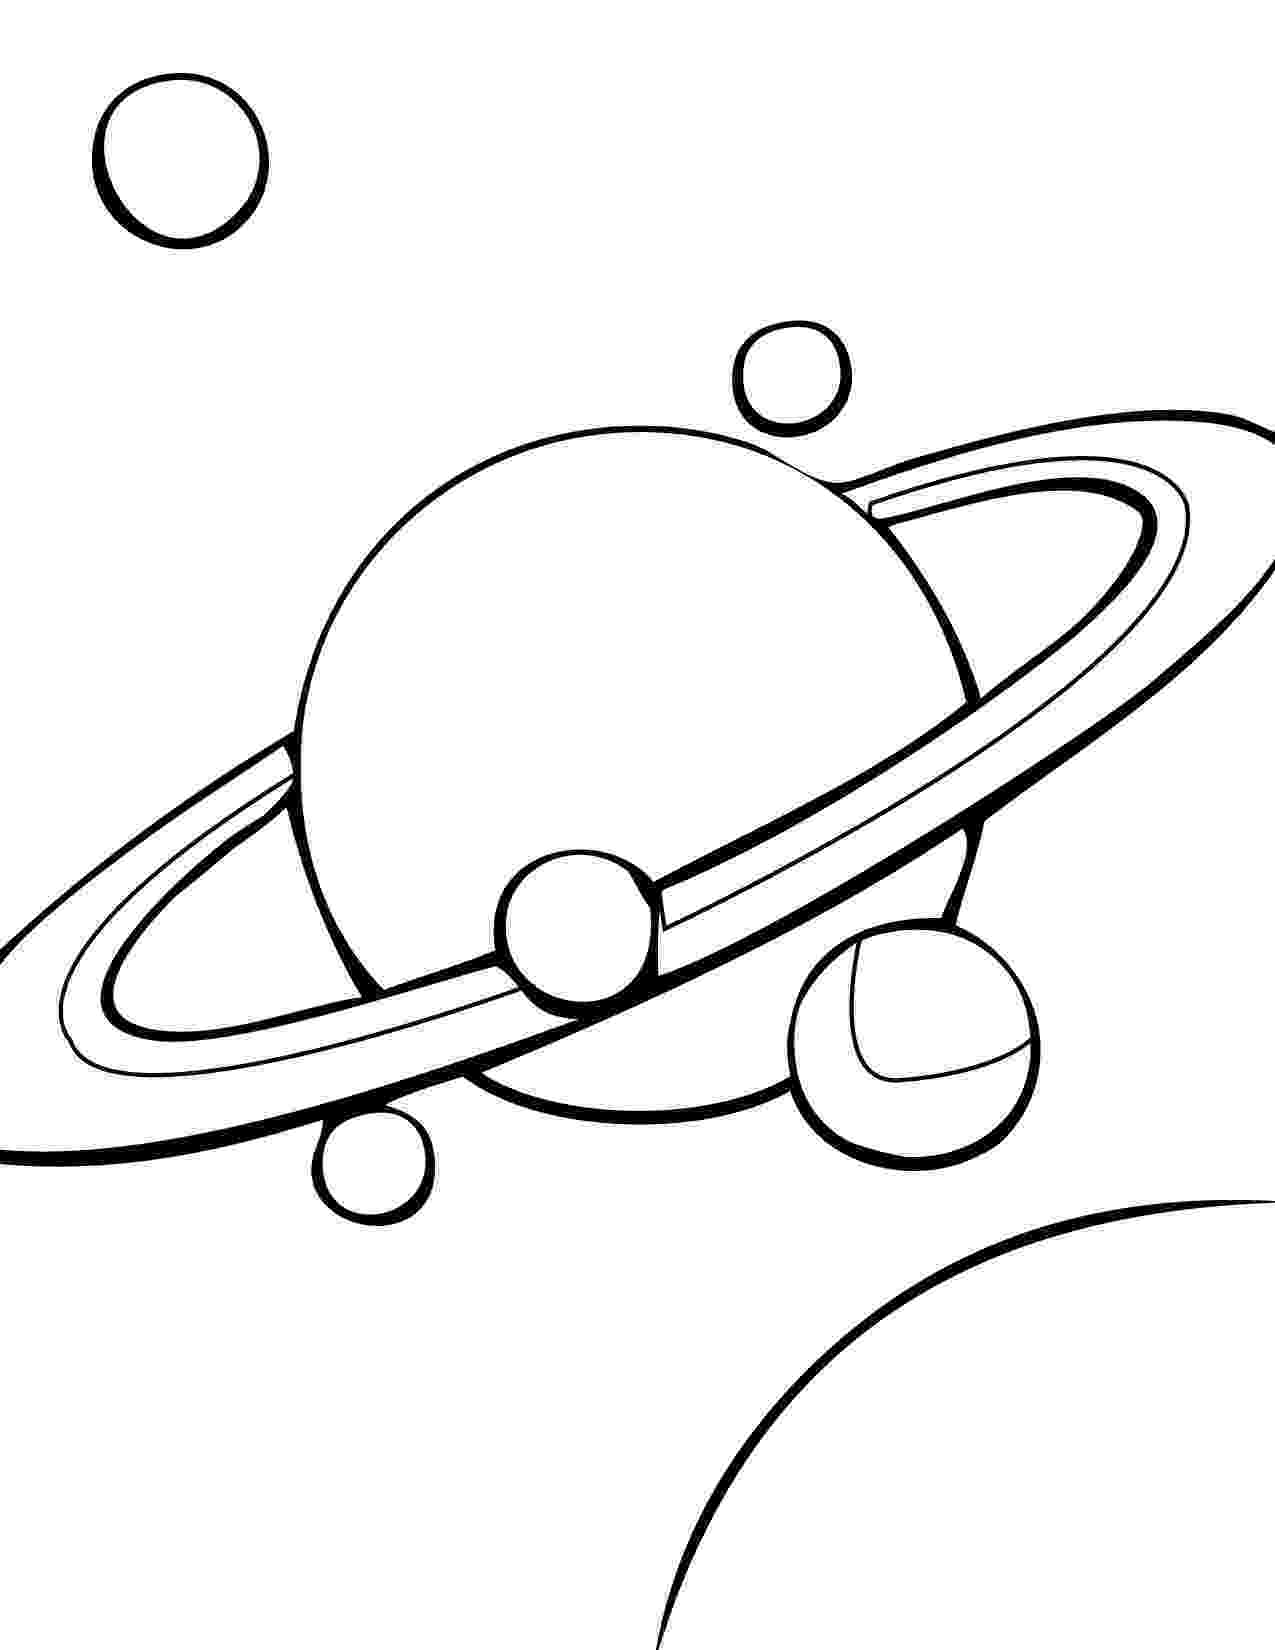 solar system for coloring free printable solar system coloring pages for kids for solar coloring system 1 1